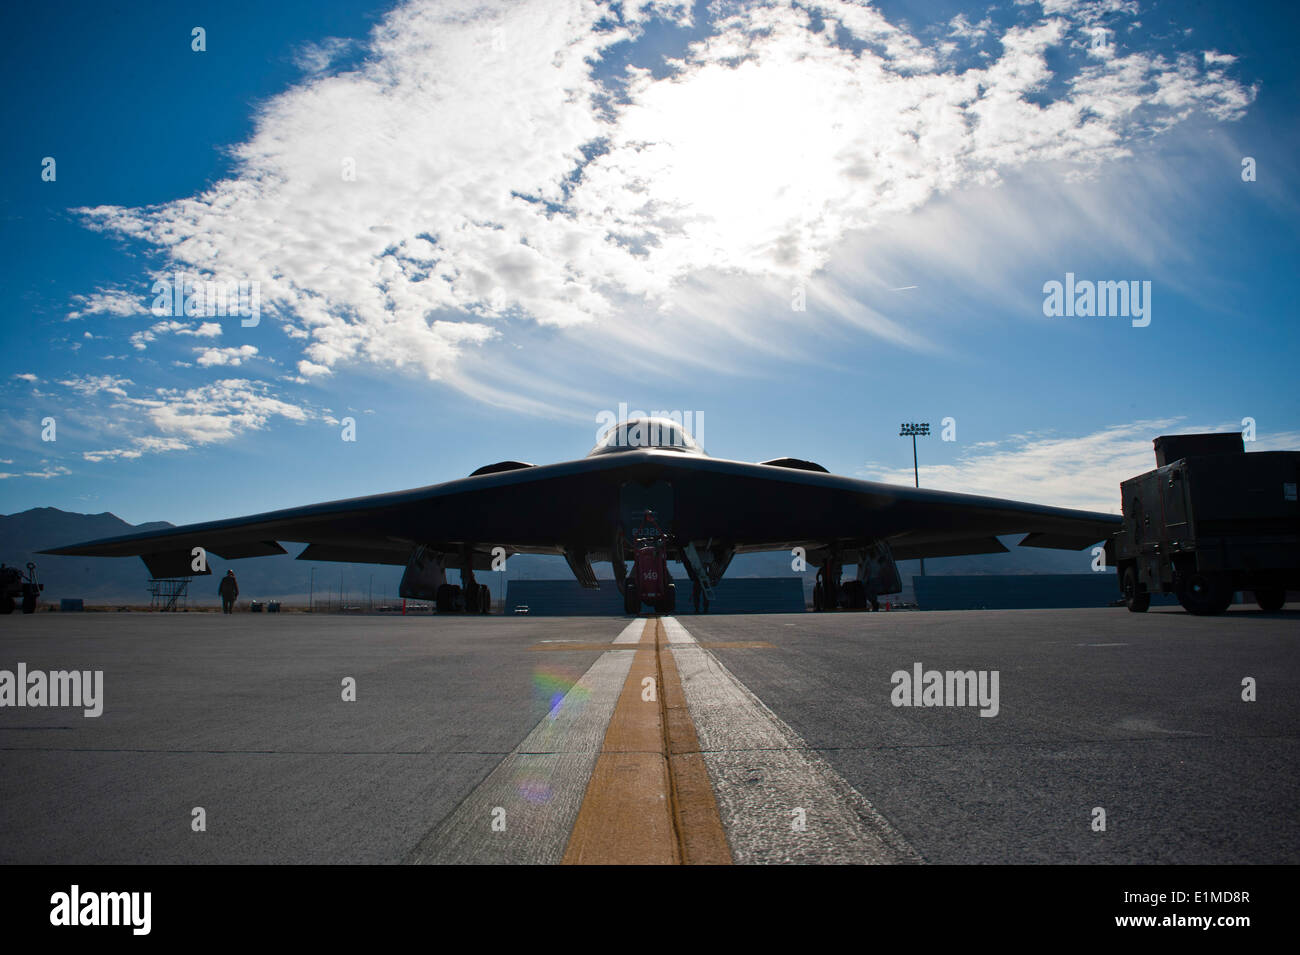 A U.S. Air Force B-2 Spirit aircraft assigned to the 13th Bomb Squadron, Whiteman Air Force Base, Mo., is inspected by ground c - Stock Image